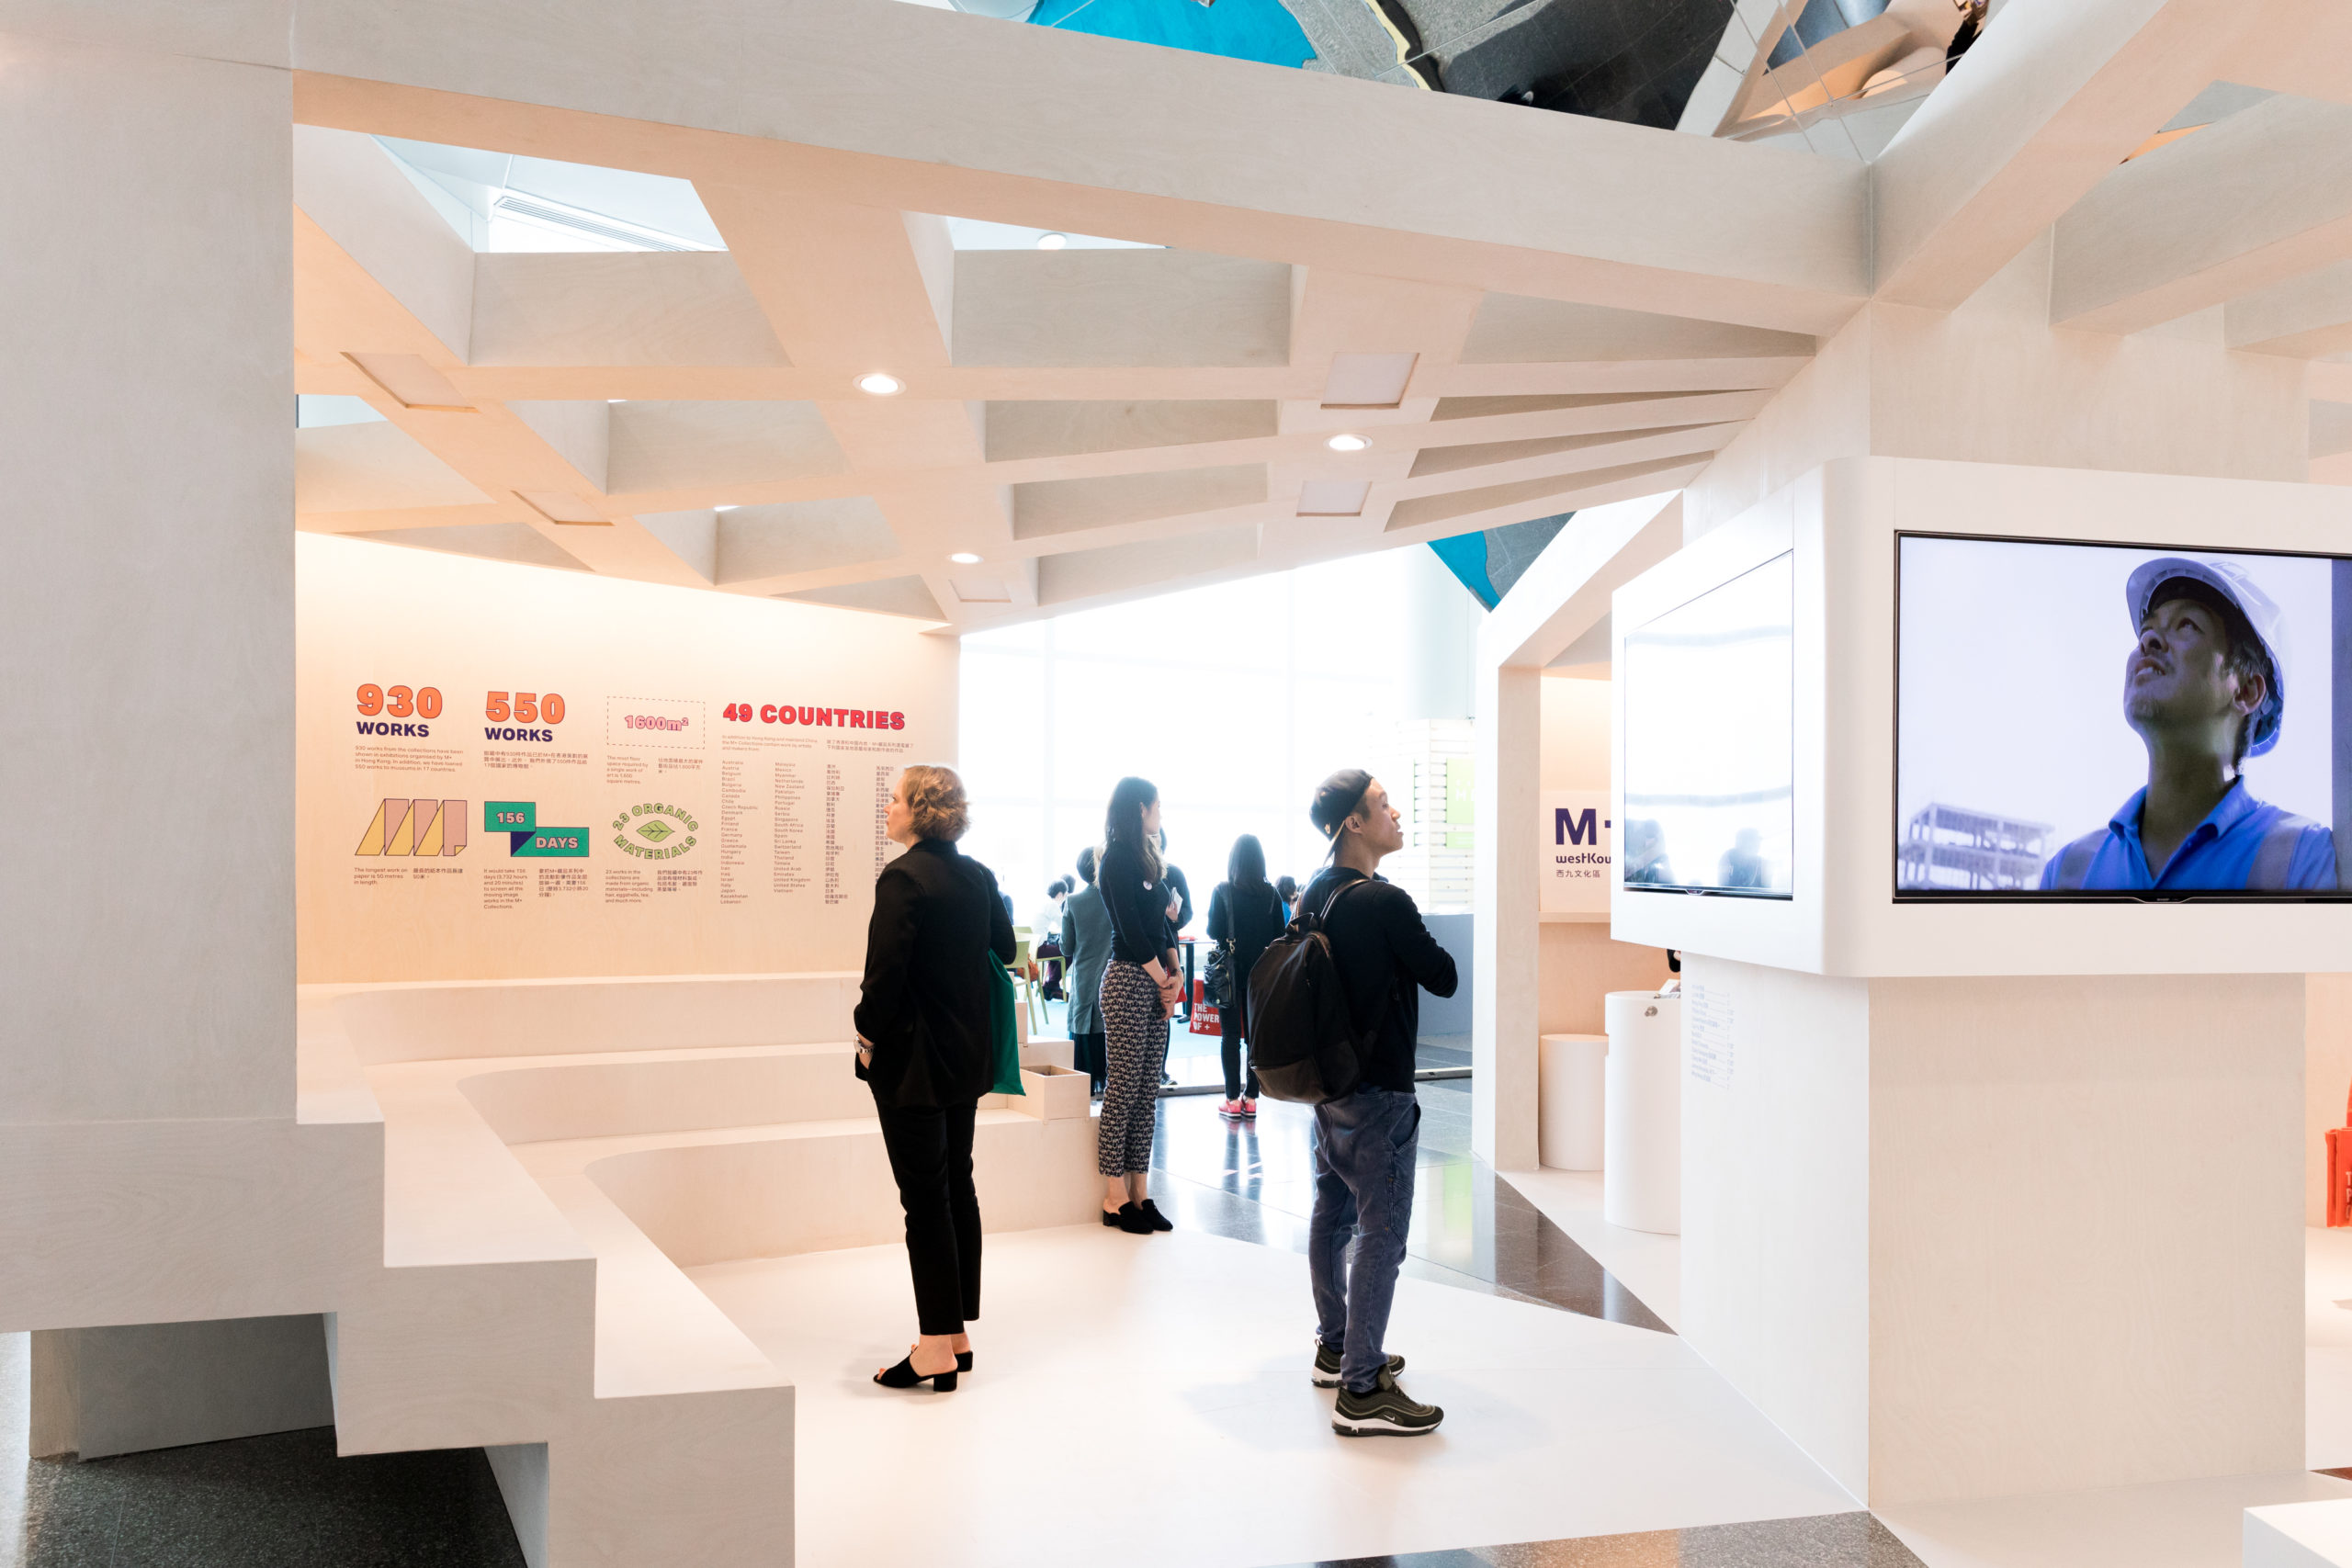 spatial practice architecture office Los Angeles Hong Kong m+ museum pavilion art basel hong kong point of views